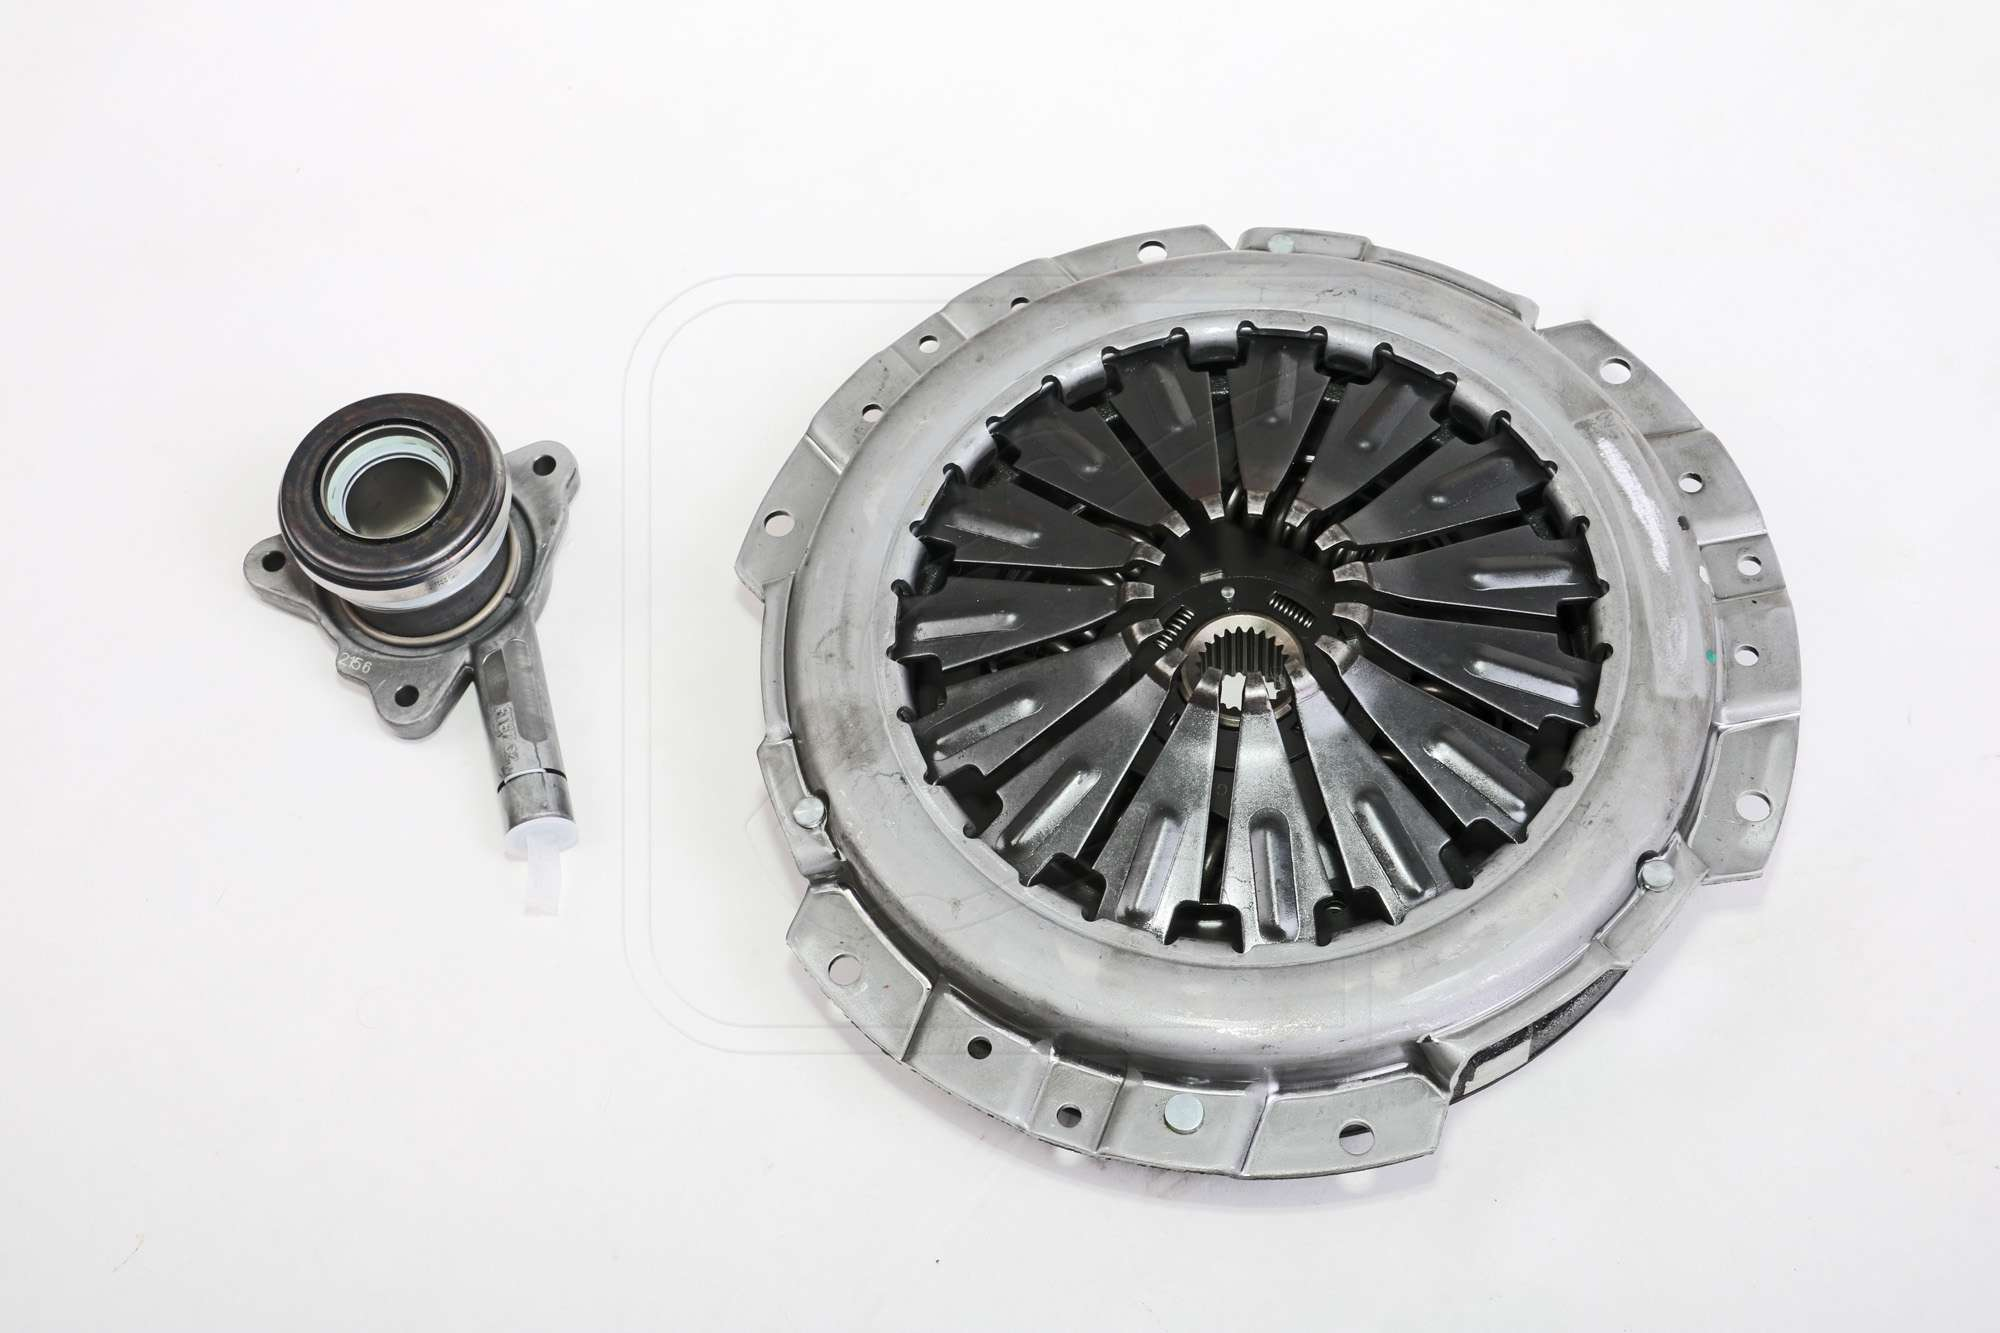 Heavy Duty Kupplungskit Fr Land Rover Defender Nakatanenga 4x4 Clutch Equipment